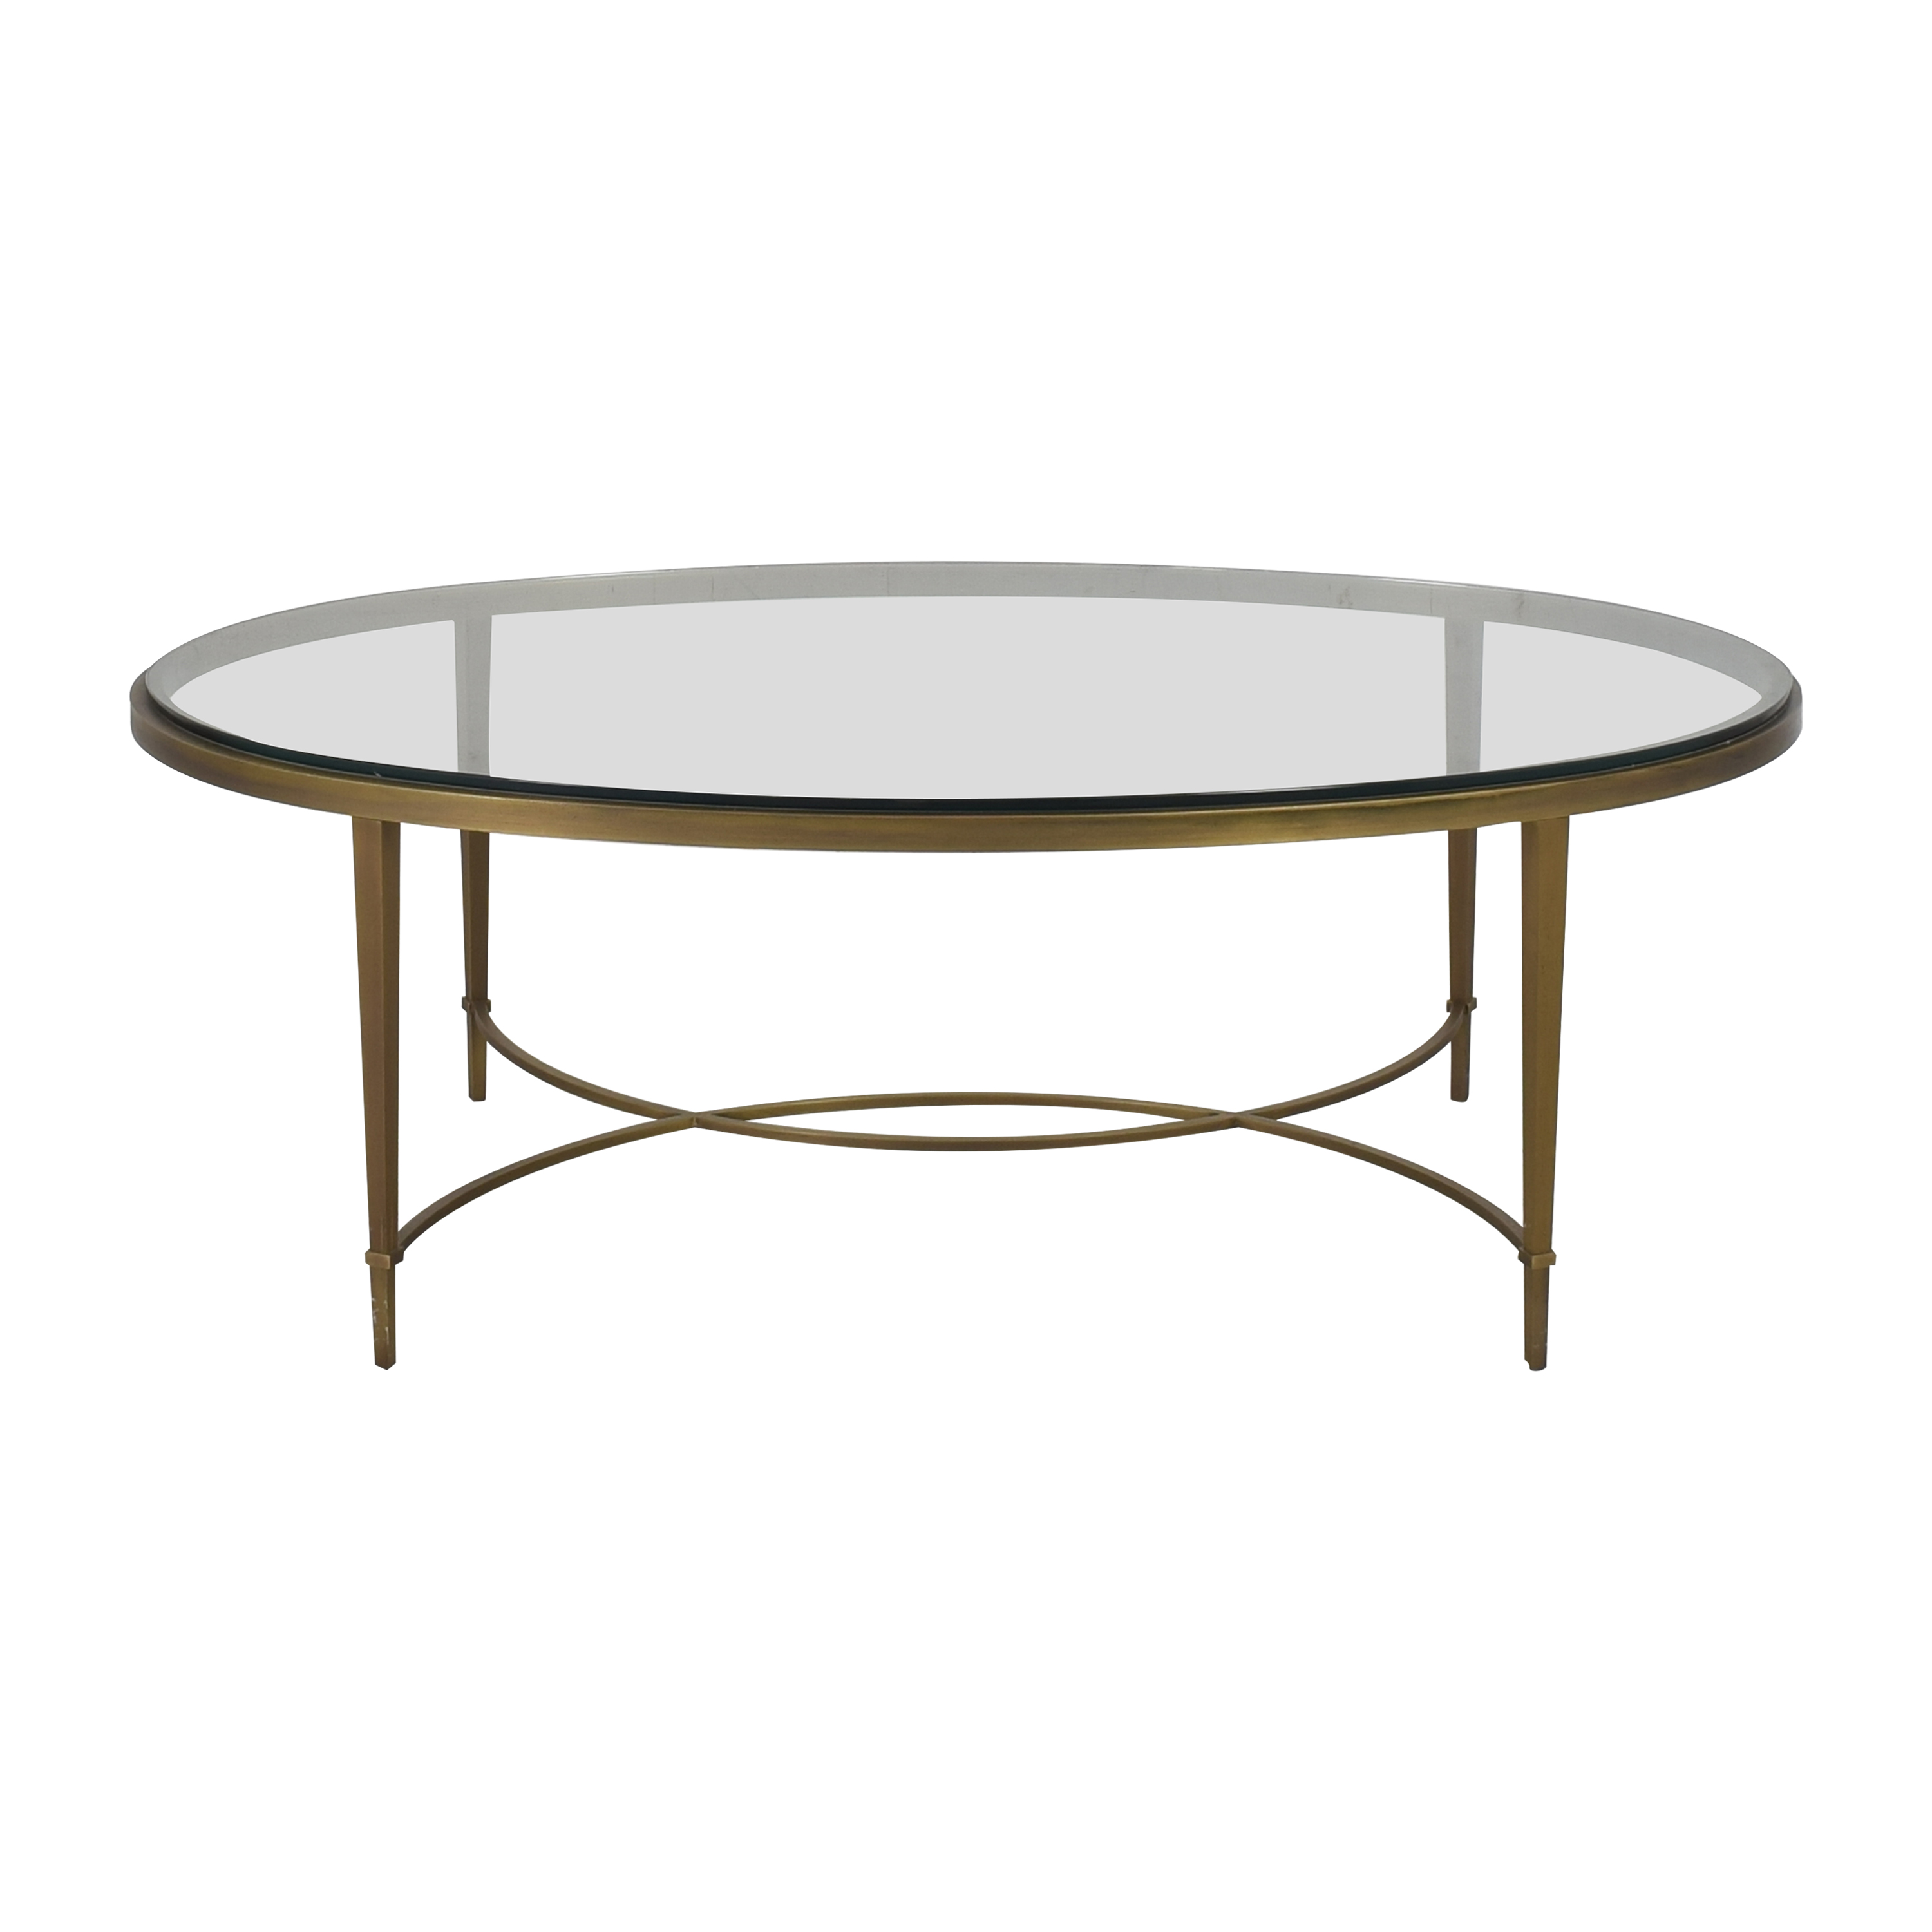 Baker Furniture Baker Furniture by Thomas Pheasant Chloe Oval Cocktail Table